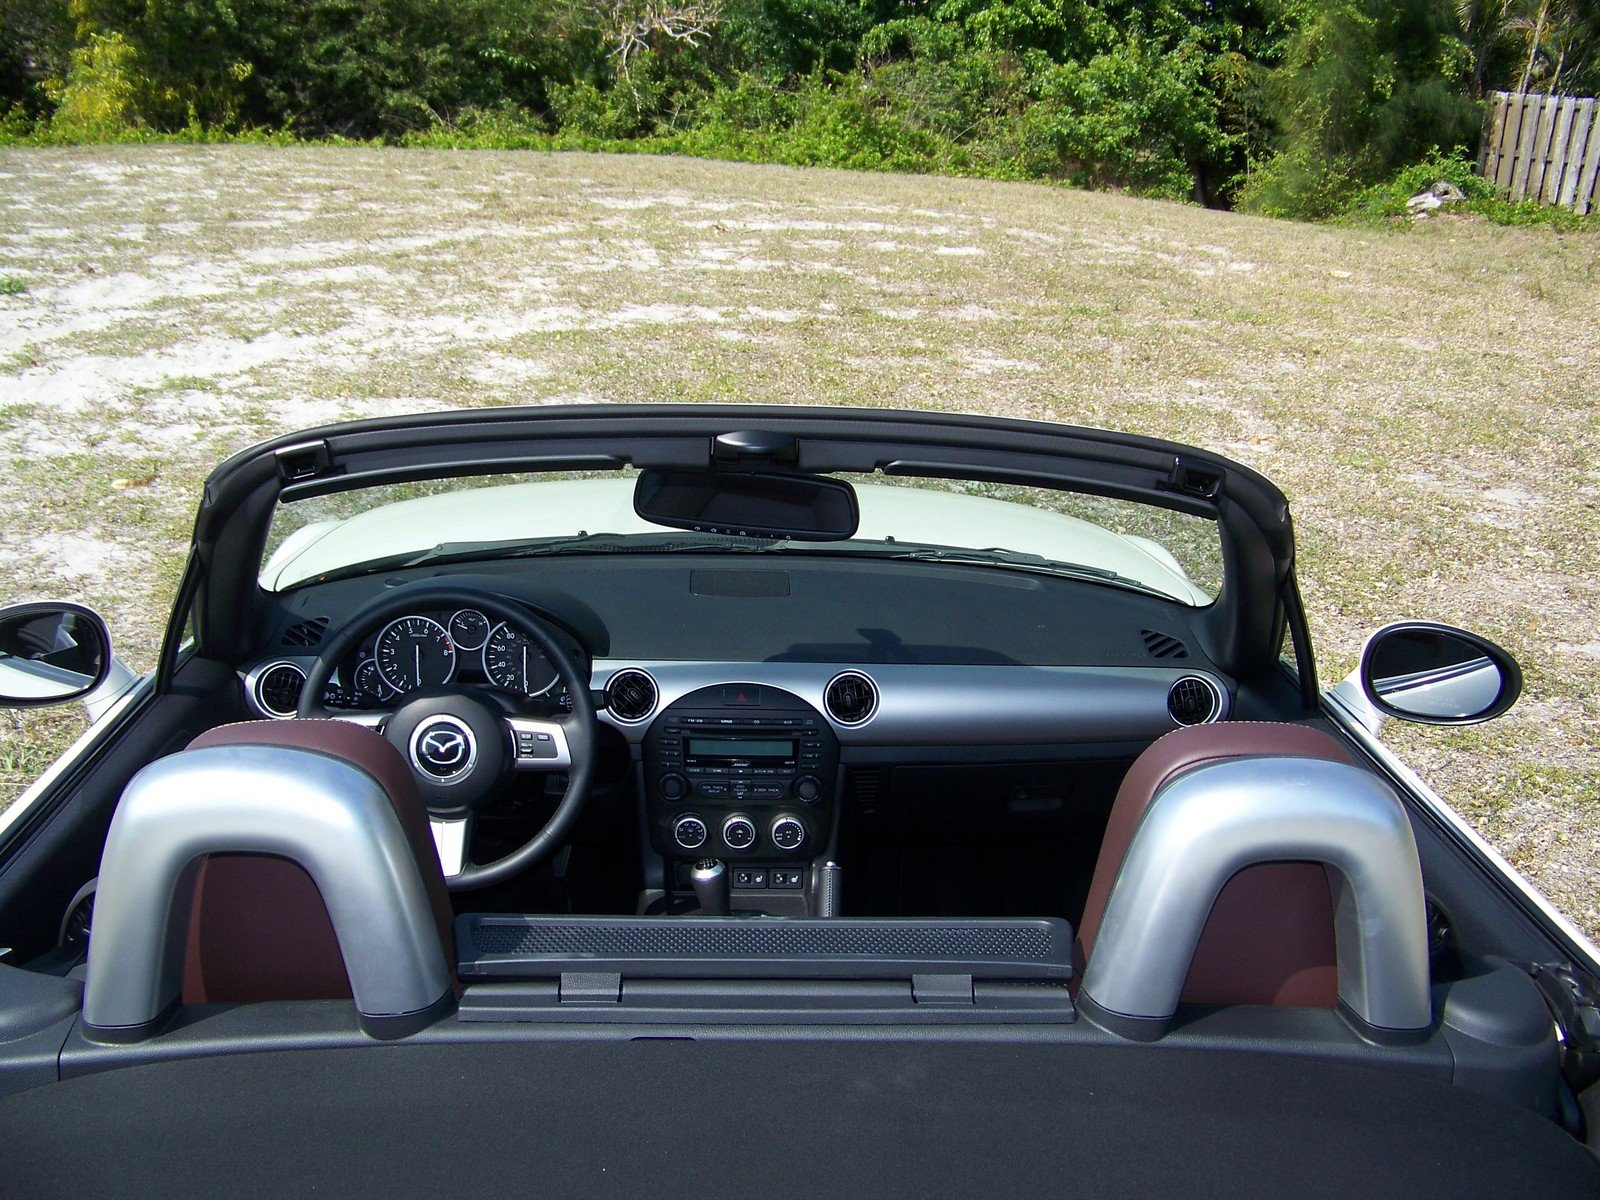 2009 mazda mx 5 miata grand touring picture 301023 car. Black Bedroom Furniture Sets. Home Design Ideas